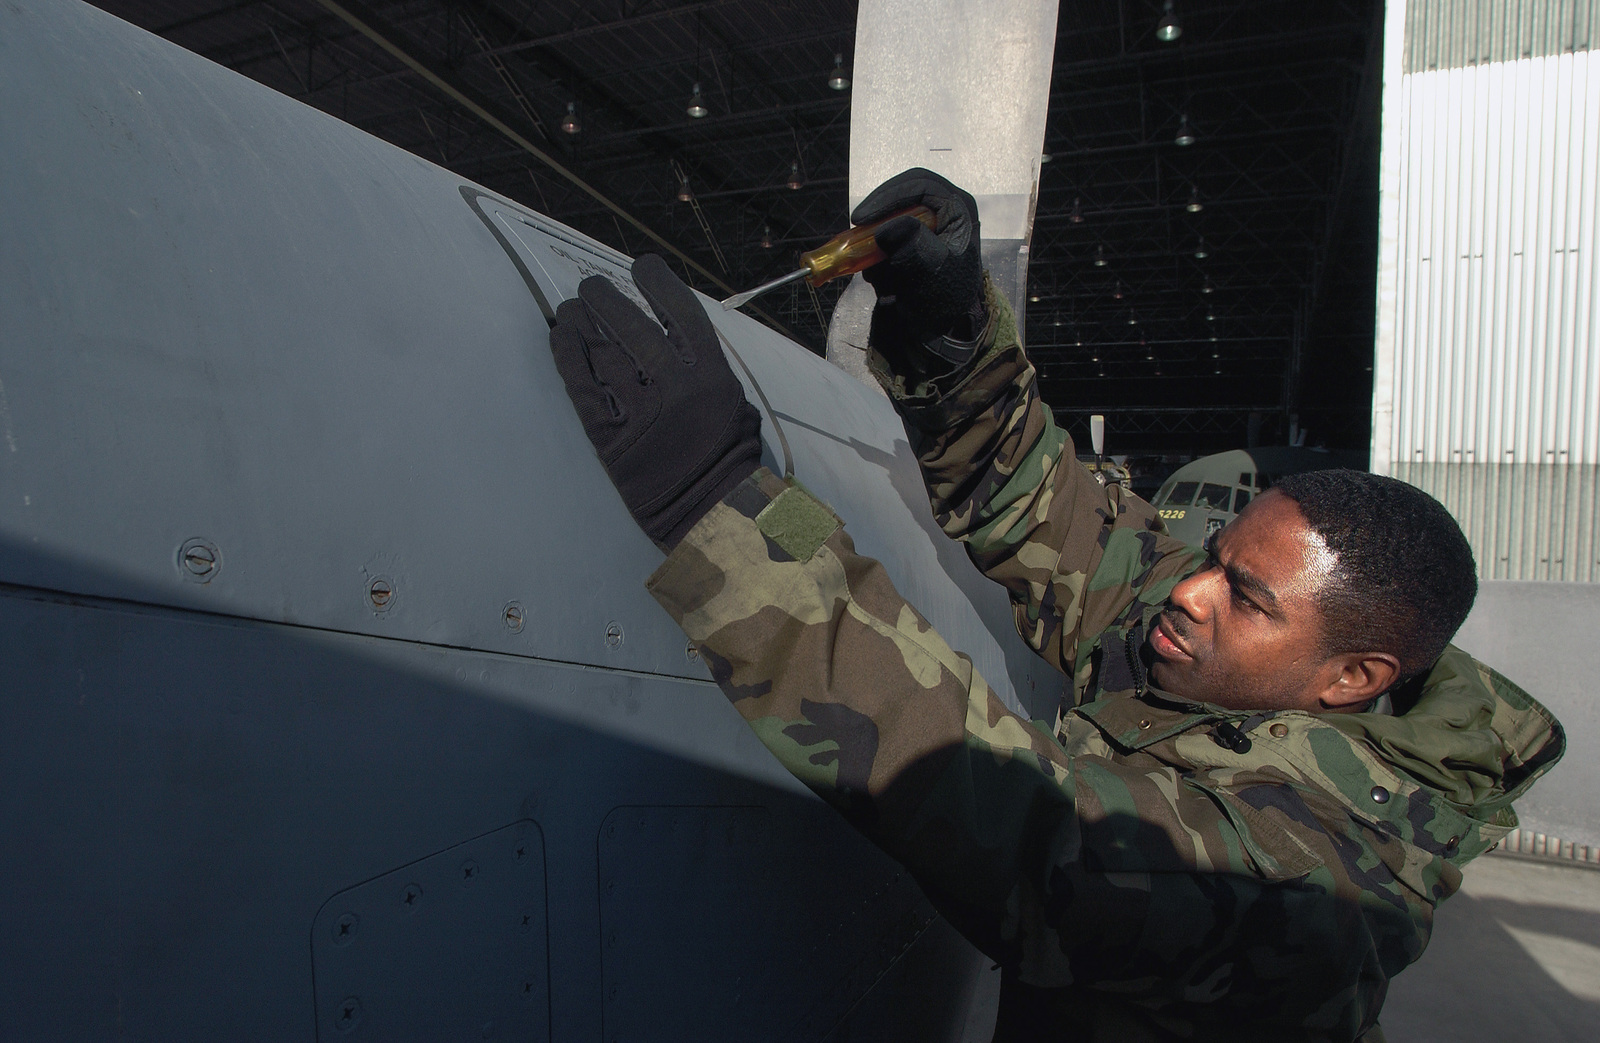 US Air Force (USAF) Technical Sergeant (TSGT) Fonzell Marsh, a Crew CHIEF with the 37th Airlift Squadron (AS), performs a series of maintenance checks on a C-130 Hercules cargo aircraft in Lisbon, Portugal (PRT)